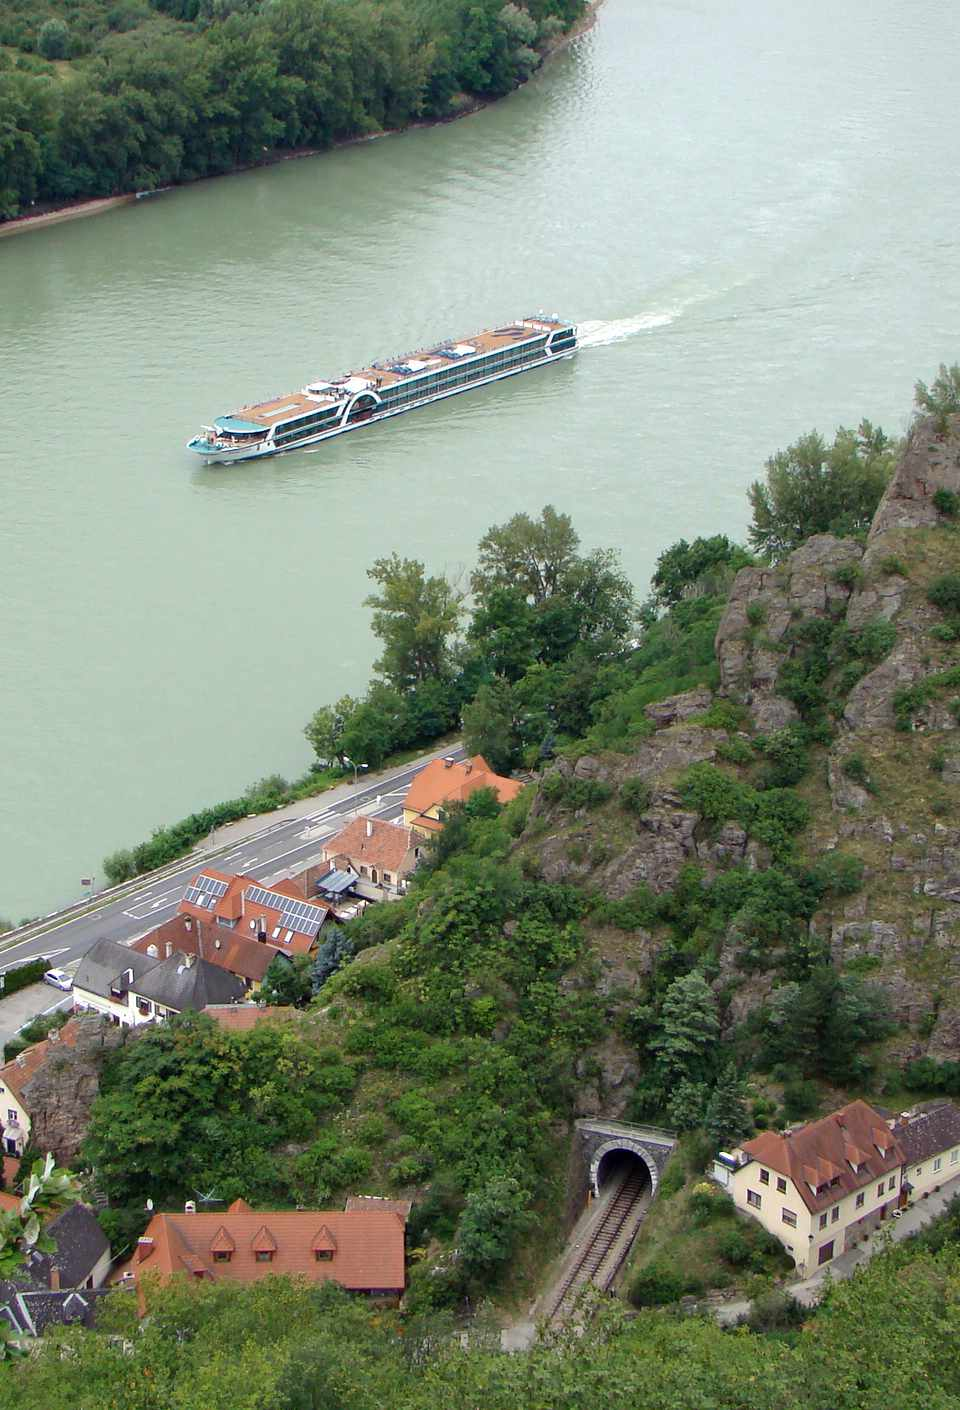 Danube River cruises take visitors through the scenic Wachau Valley in Austria